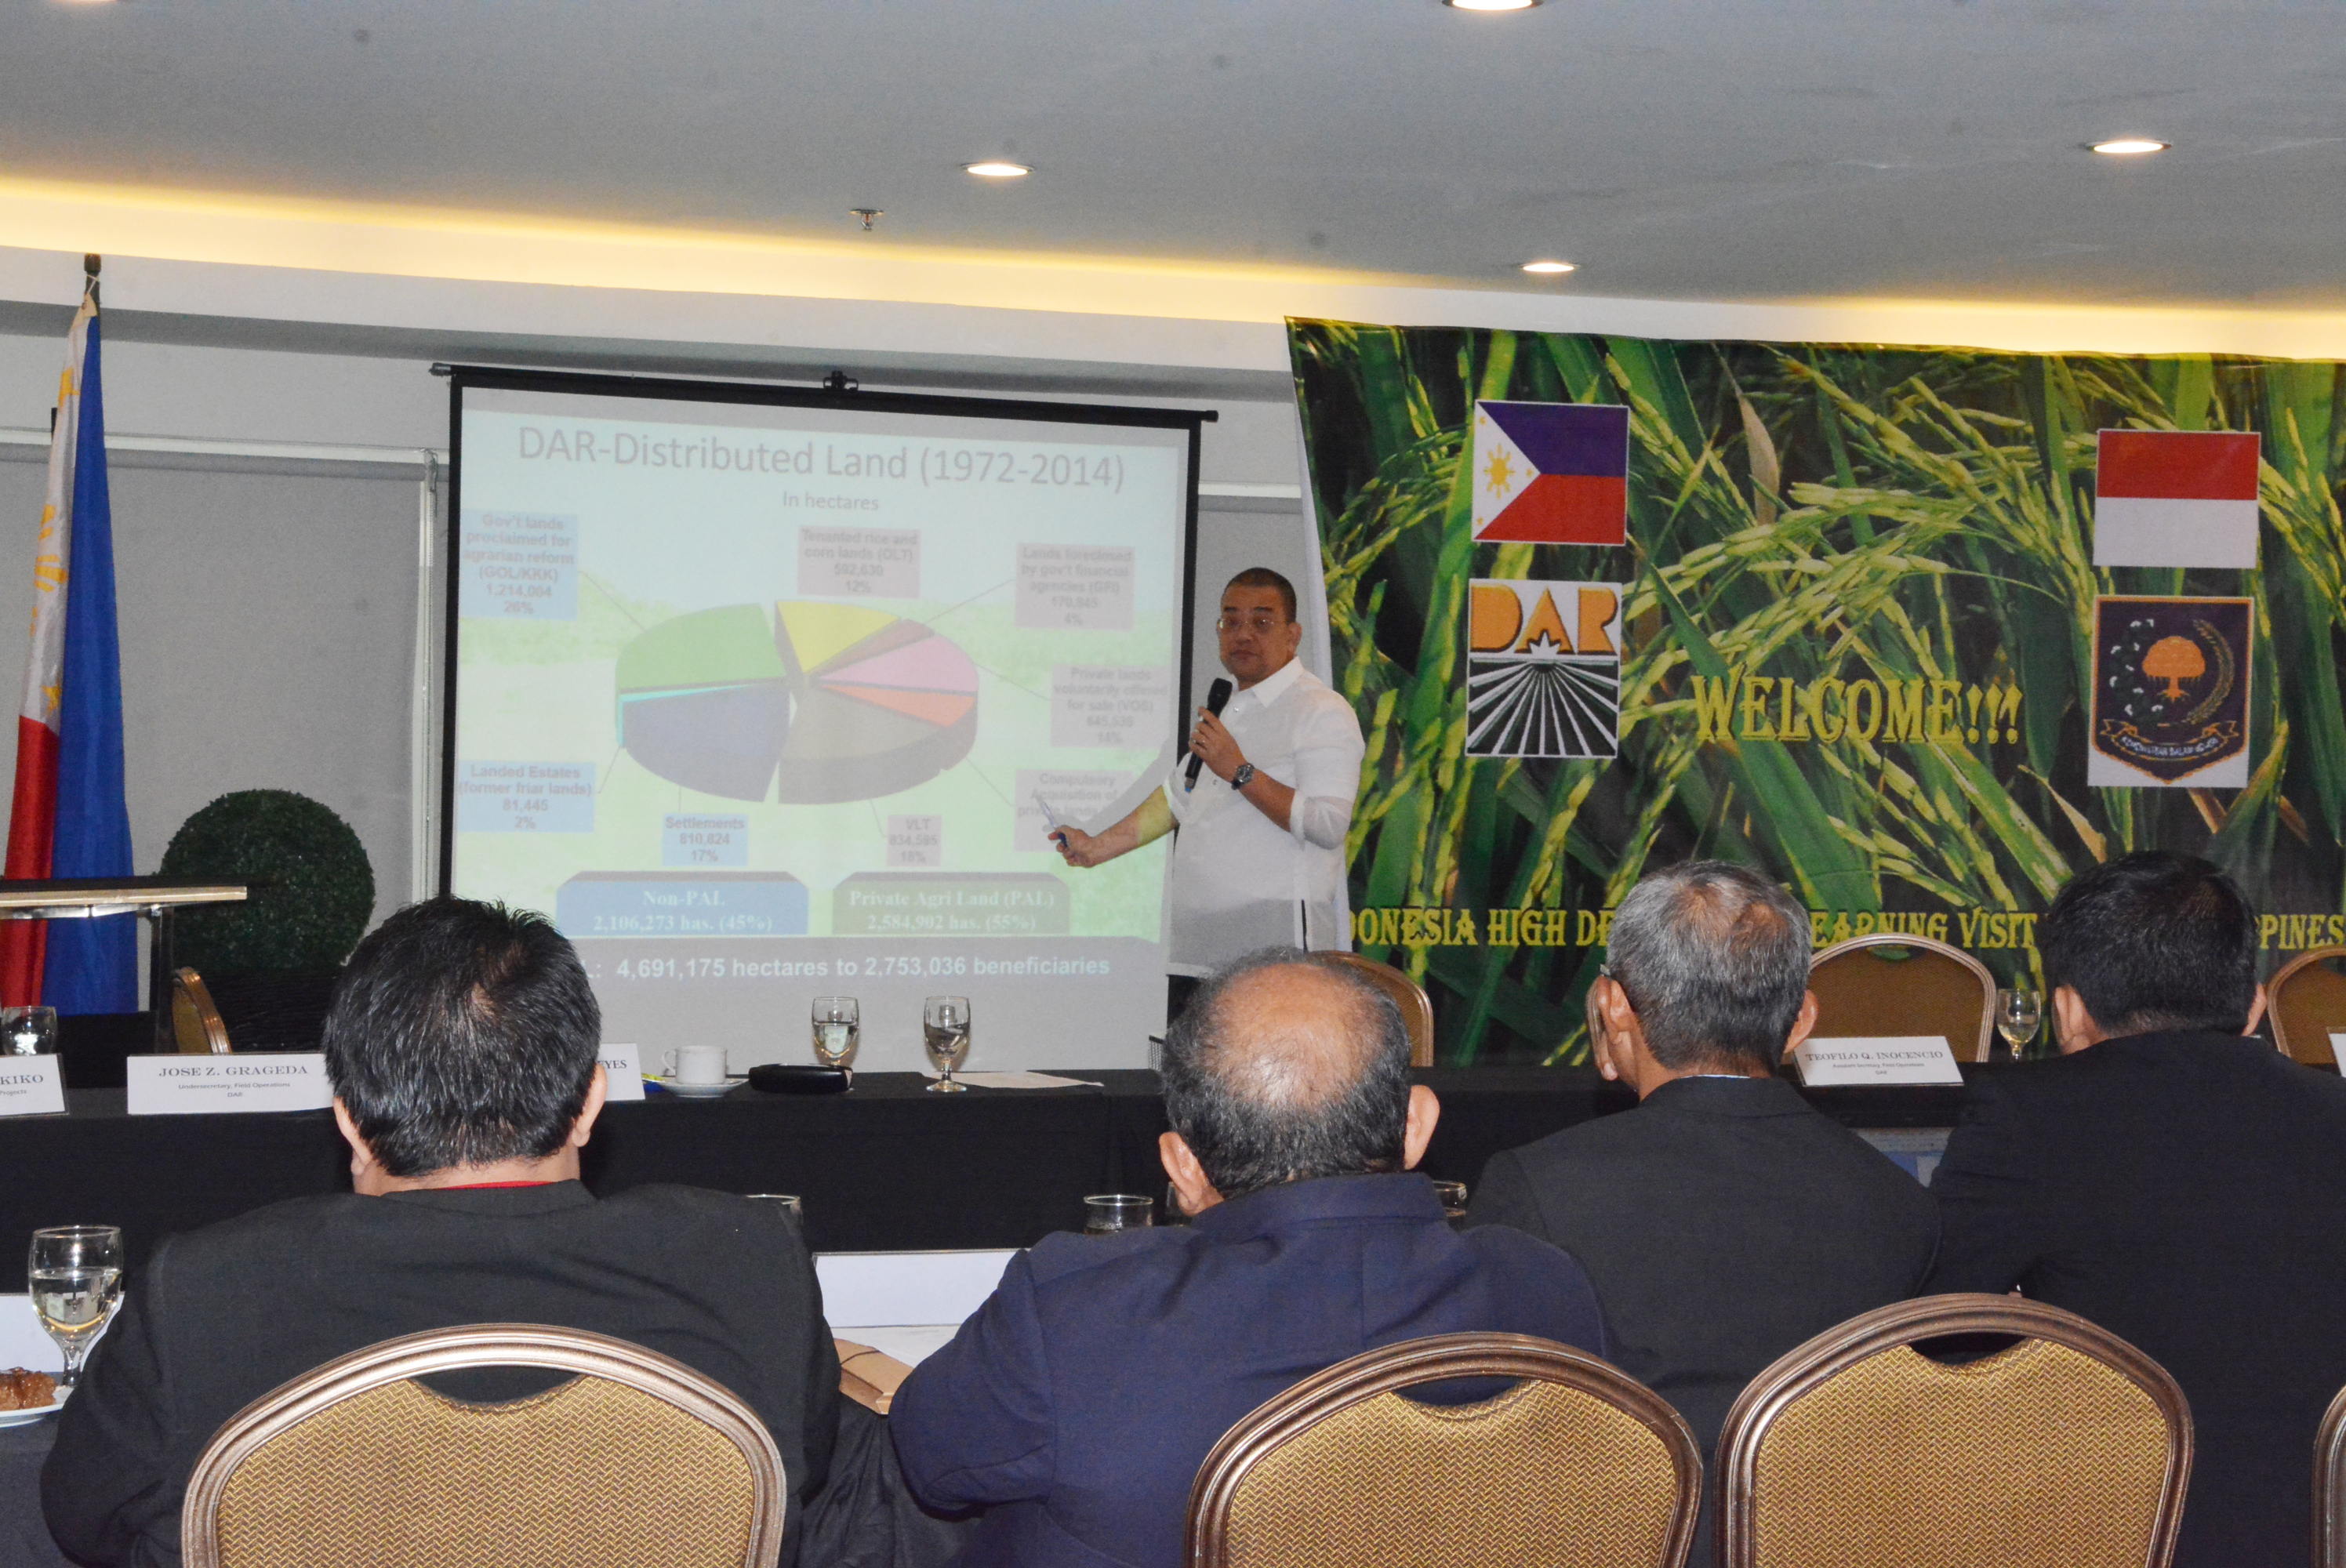 DAR Secretary delos Reyes presenting the status of Philippine agrarian lands during the orientation meeting. Photo by DAR.